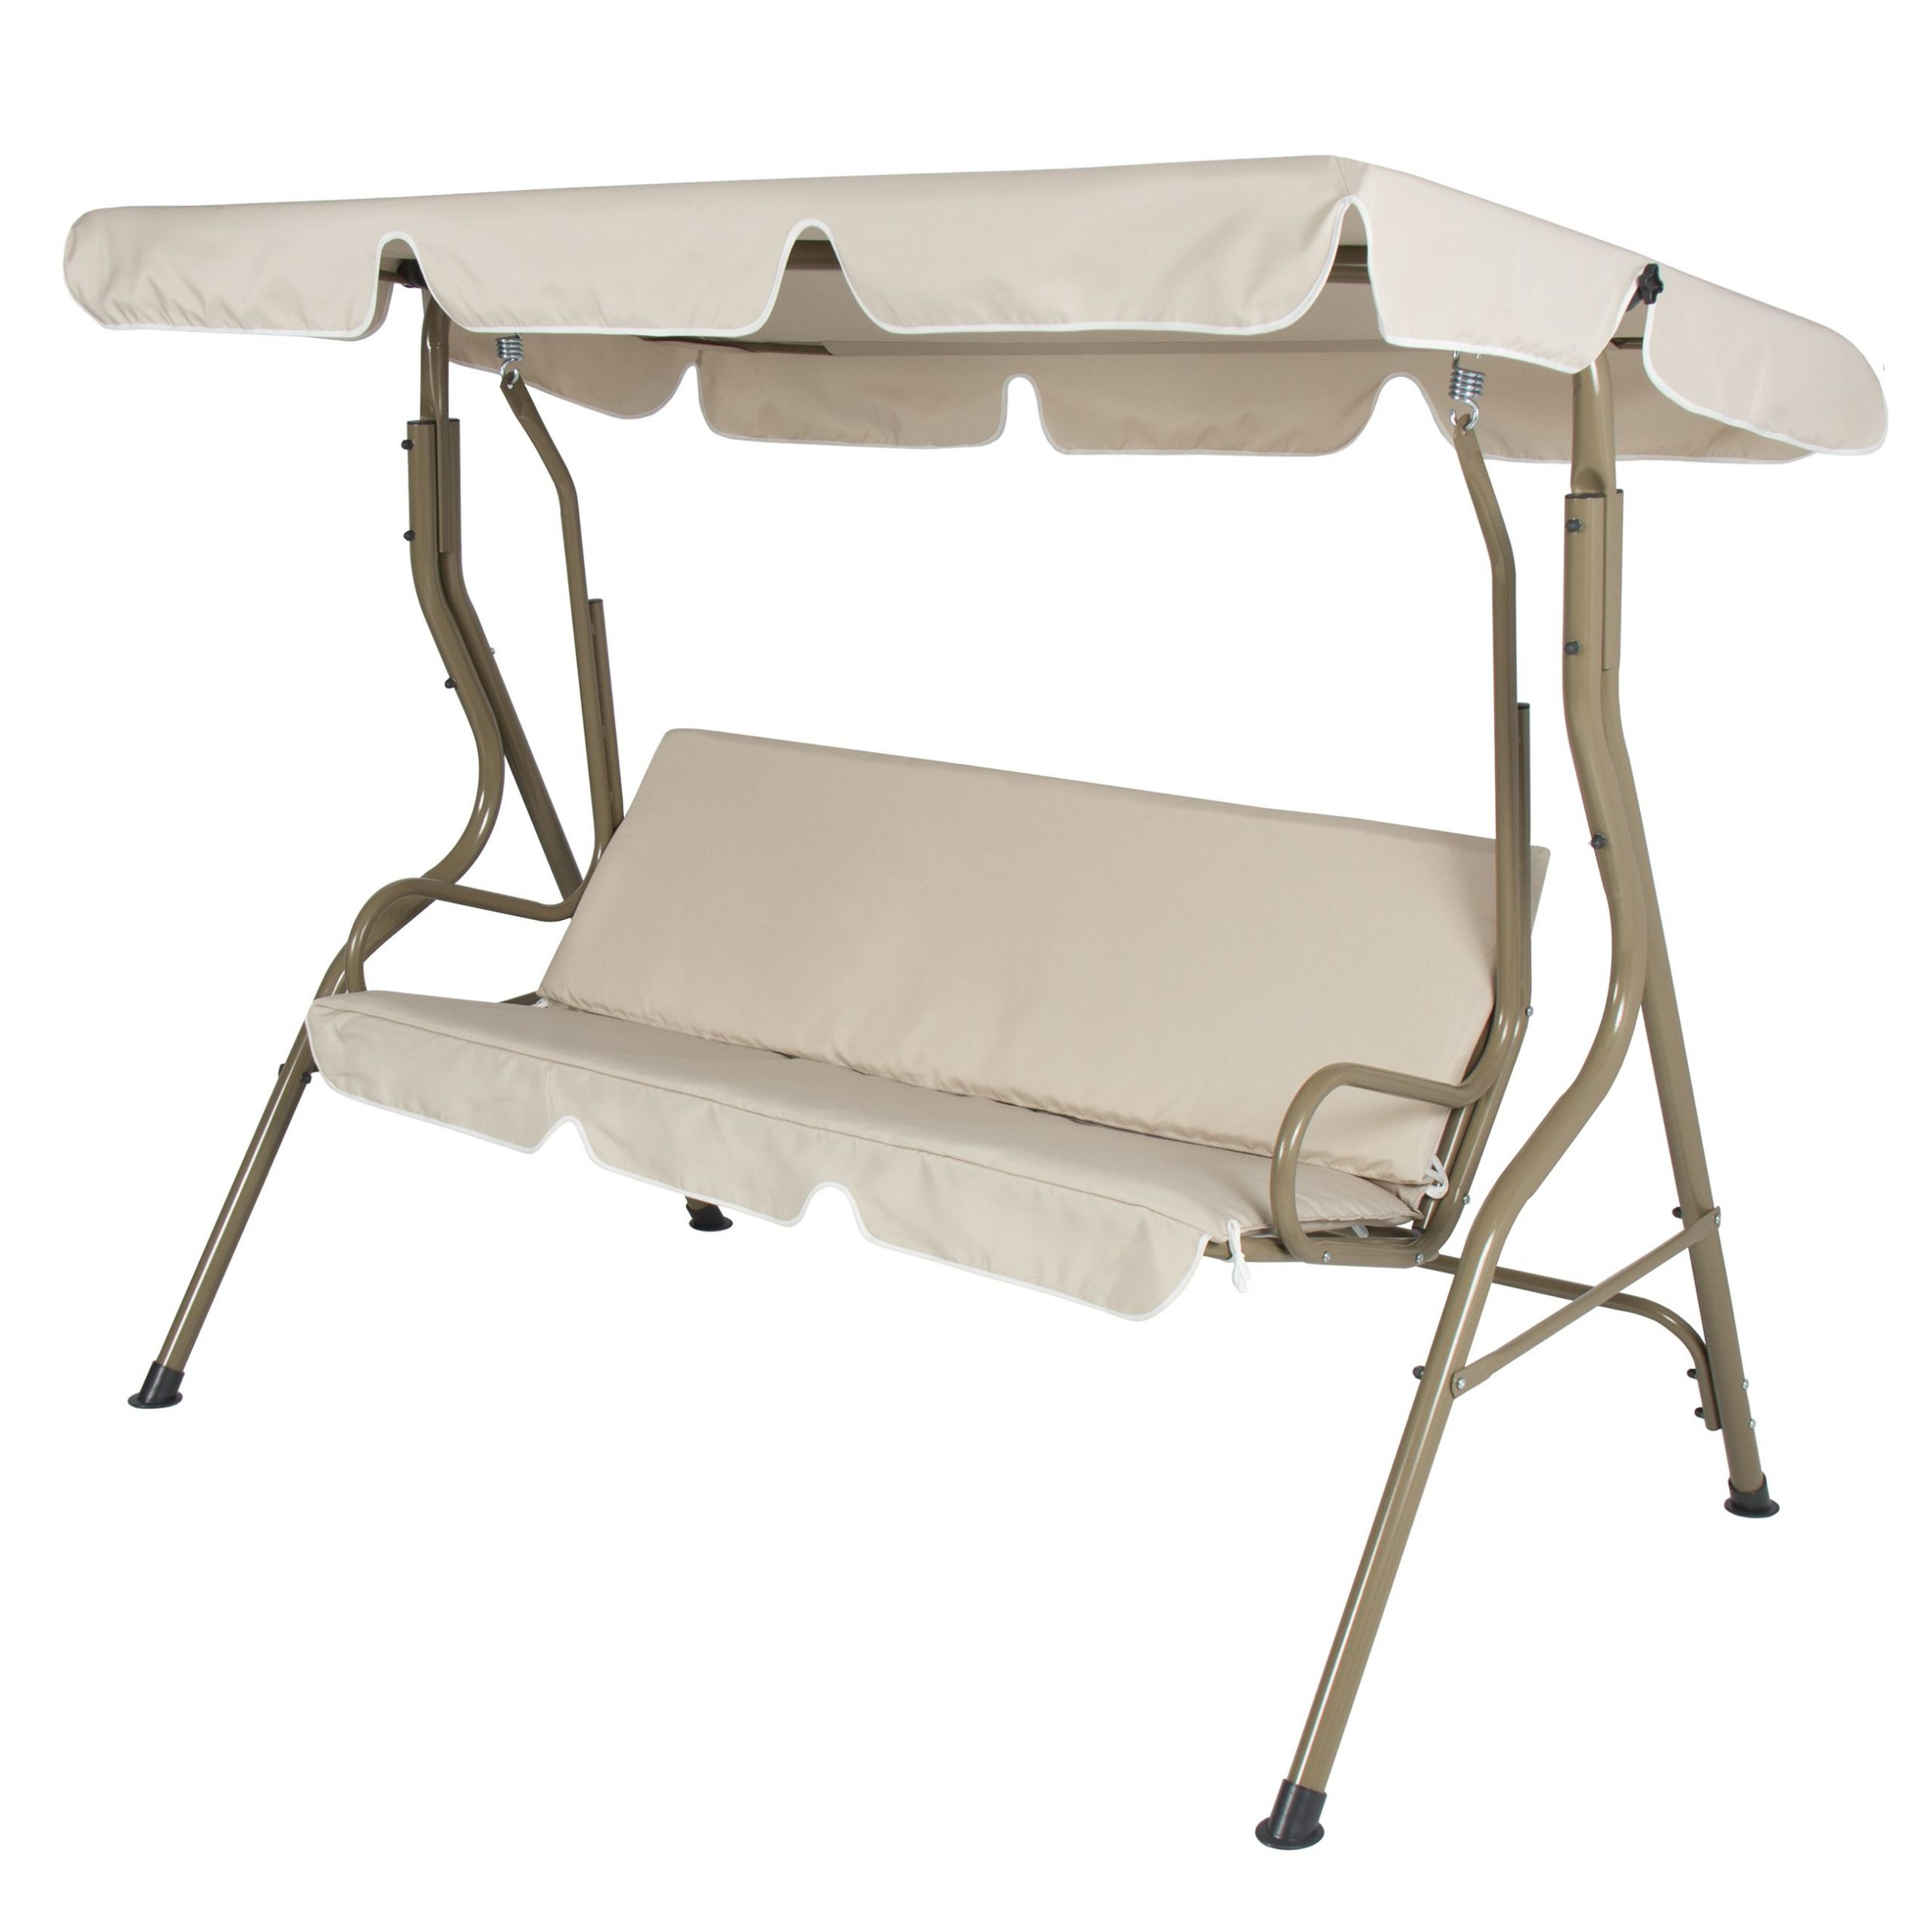 Outdoor 2 Person Canopy Swing Glider Hammock Patio Furniture Inside Most Recently Released Patio Glider Hammock Porch Swings (Gallery 1 of 25)